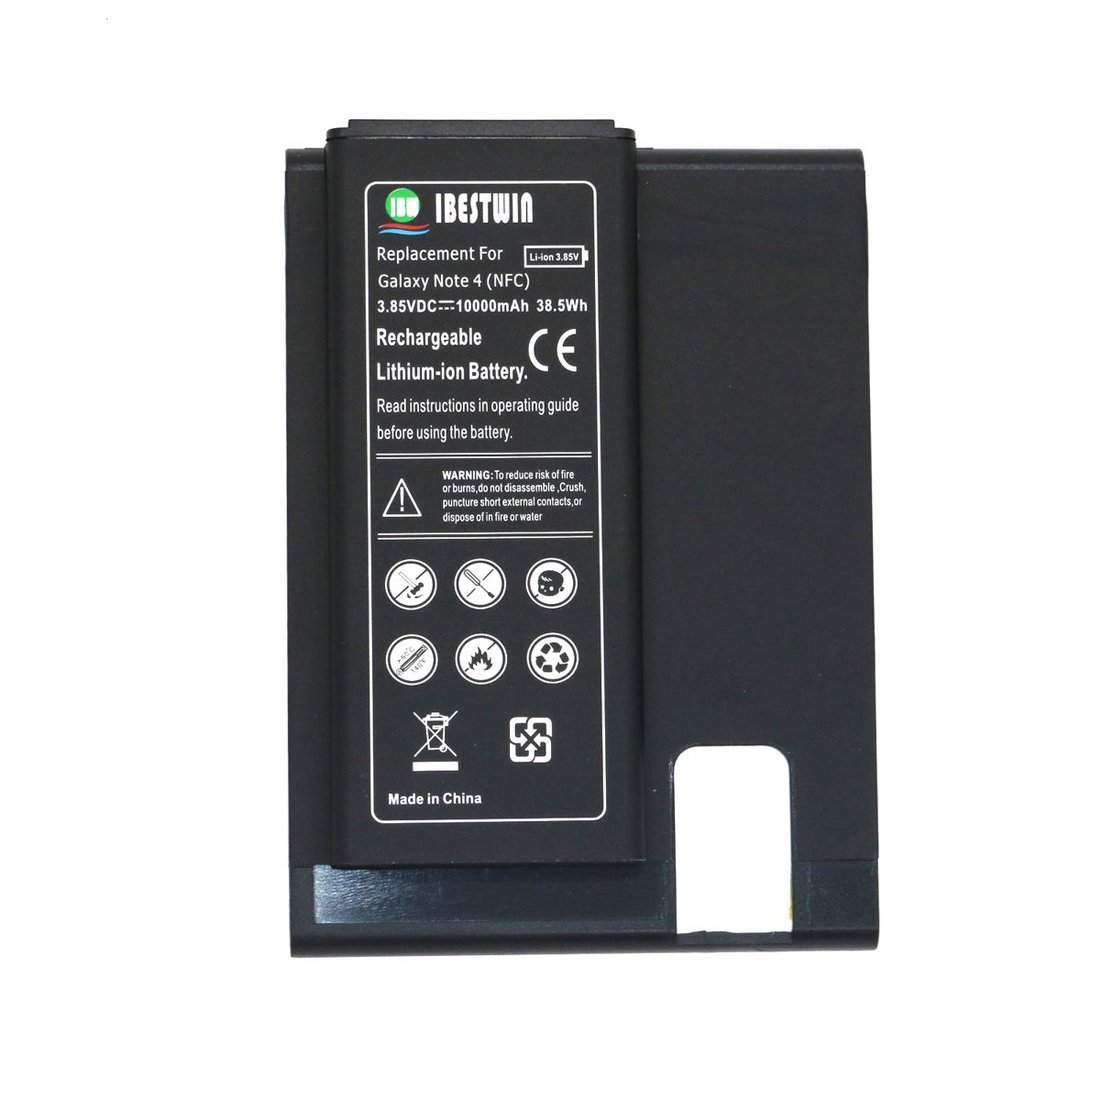 749d0e9adf1a IBESTWIN Extended Battery For Samsung Galaxy Note 4 with NFC (10000MAH)